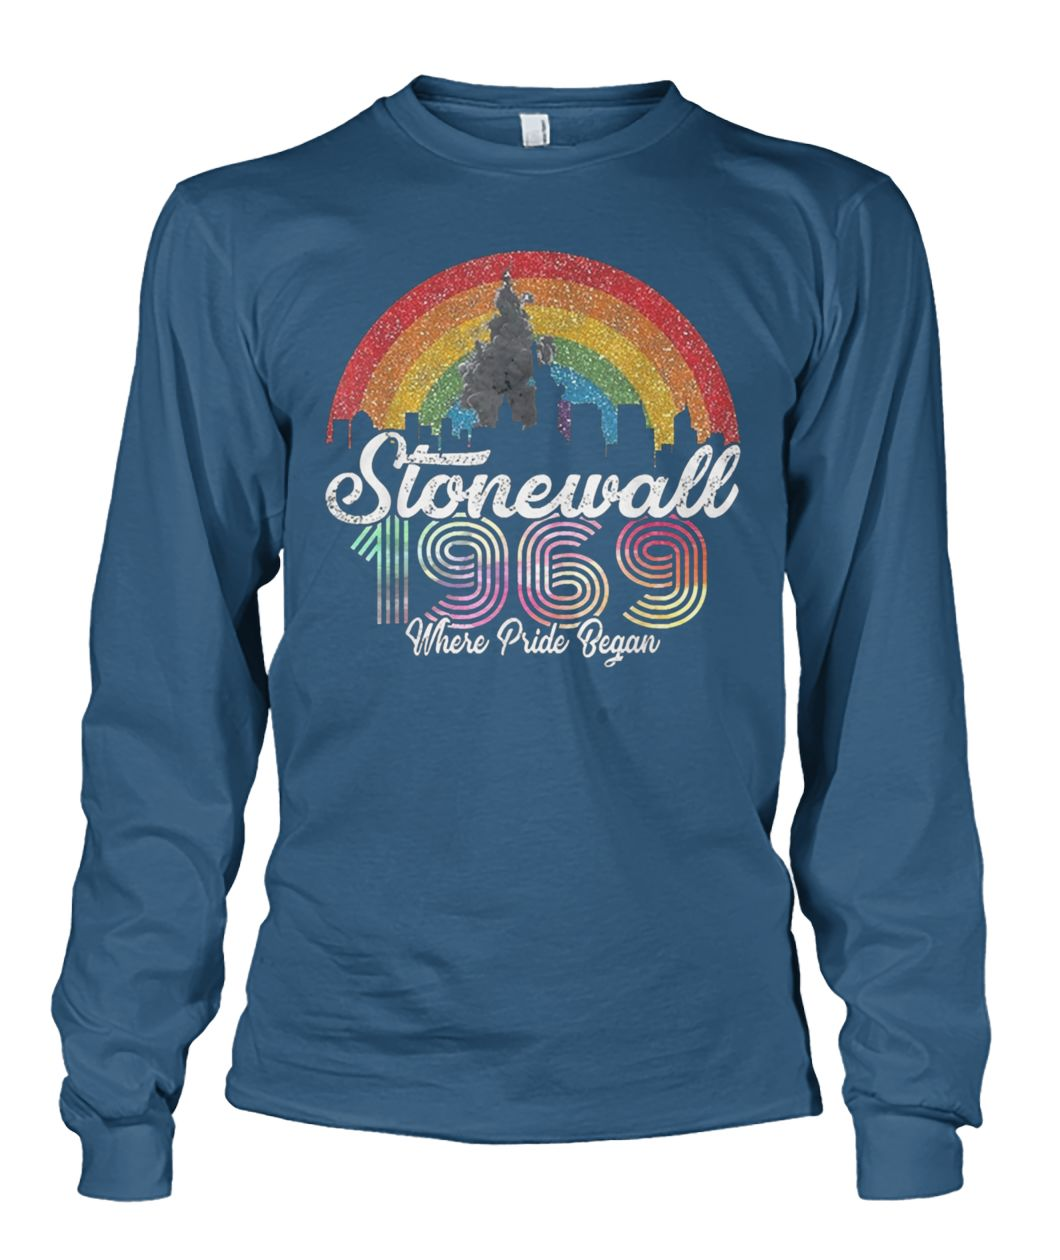 LGBT pride stonewall 1969 where pride began unisex long sleeve